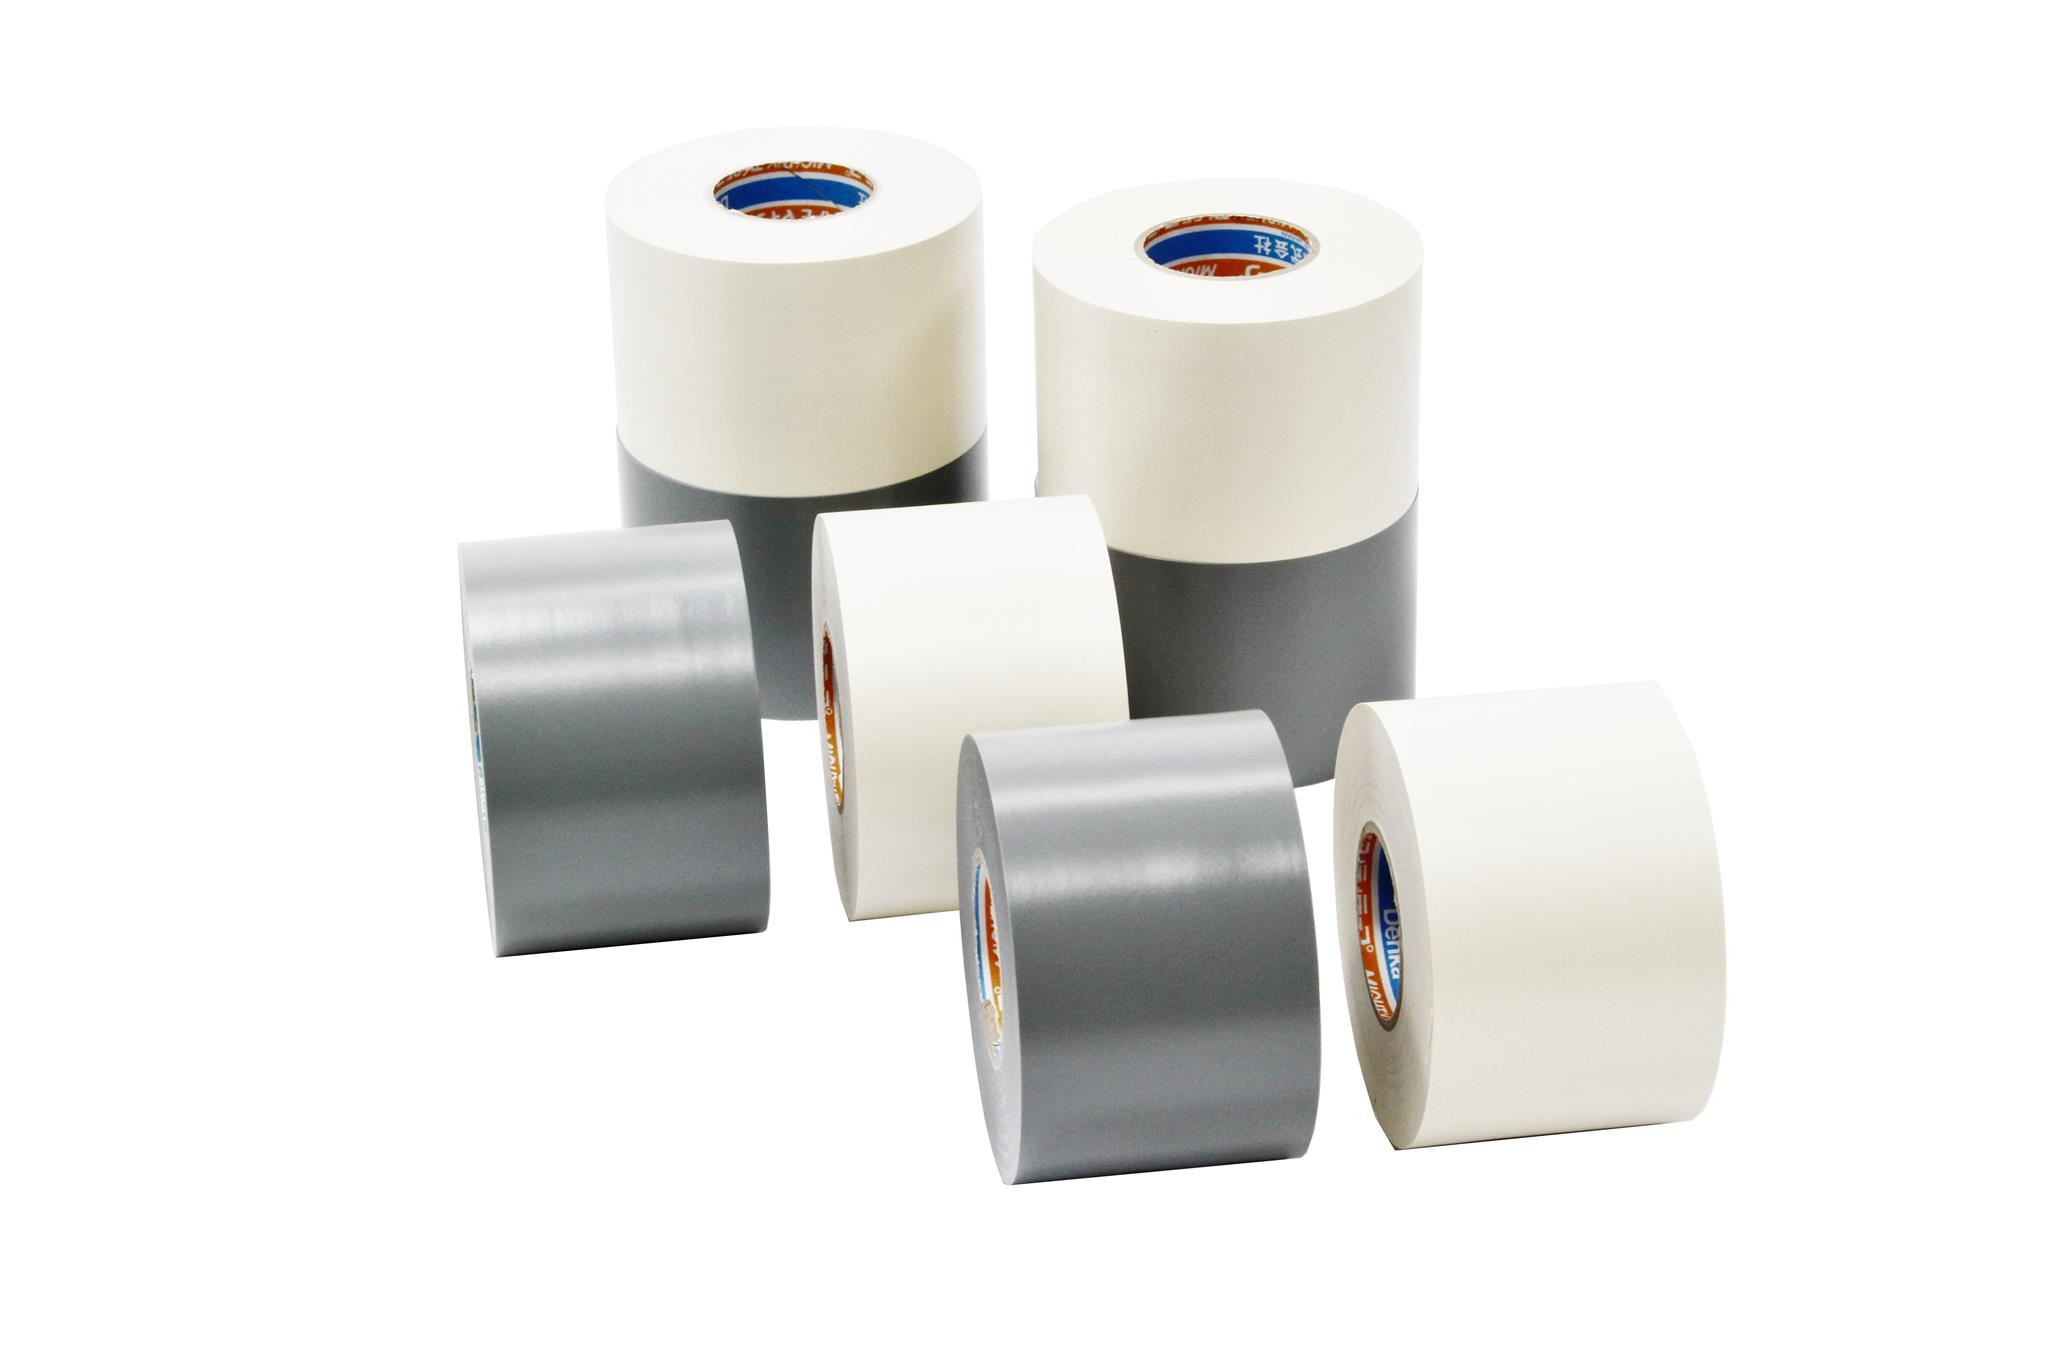 Vinyl tape for air conditioning ducts (adhesive type)